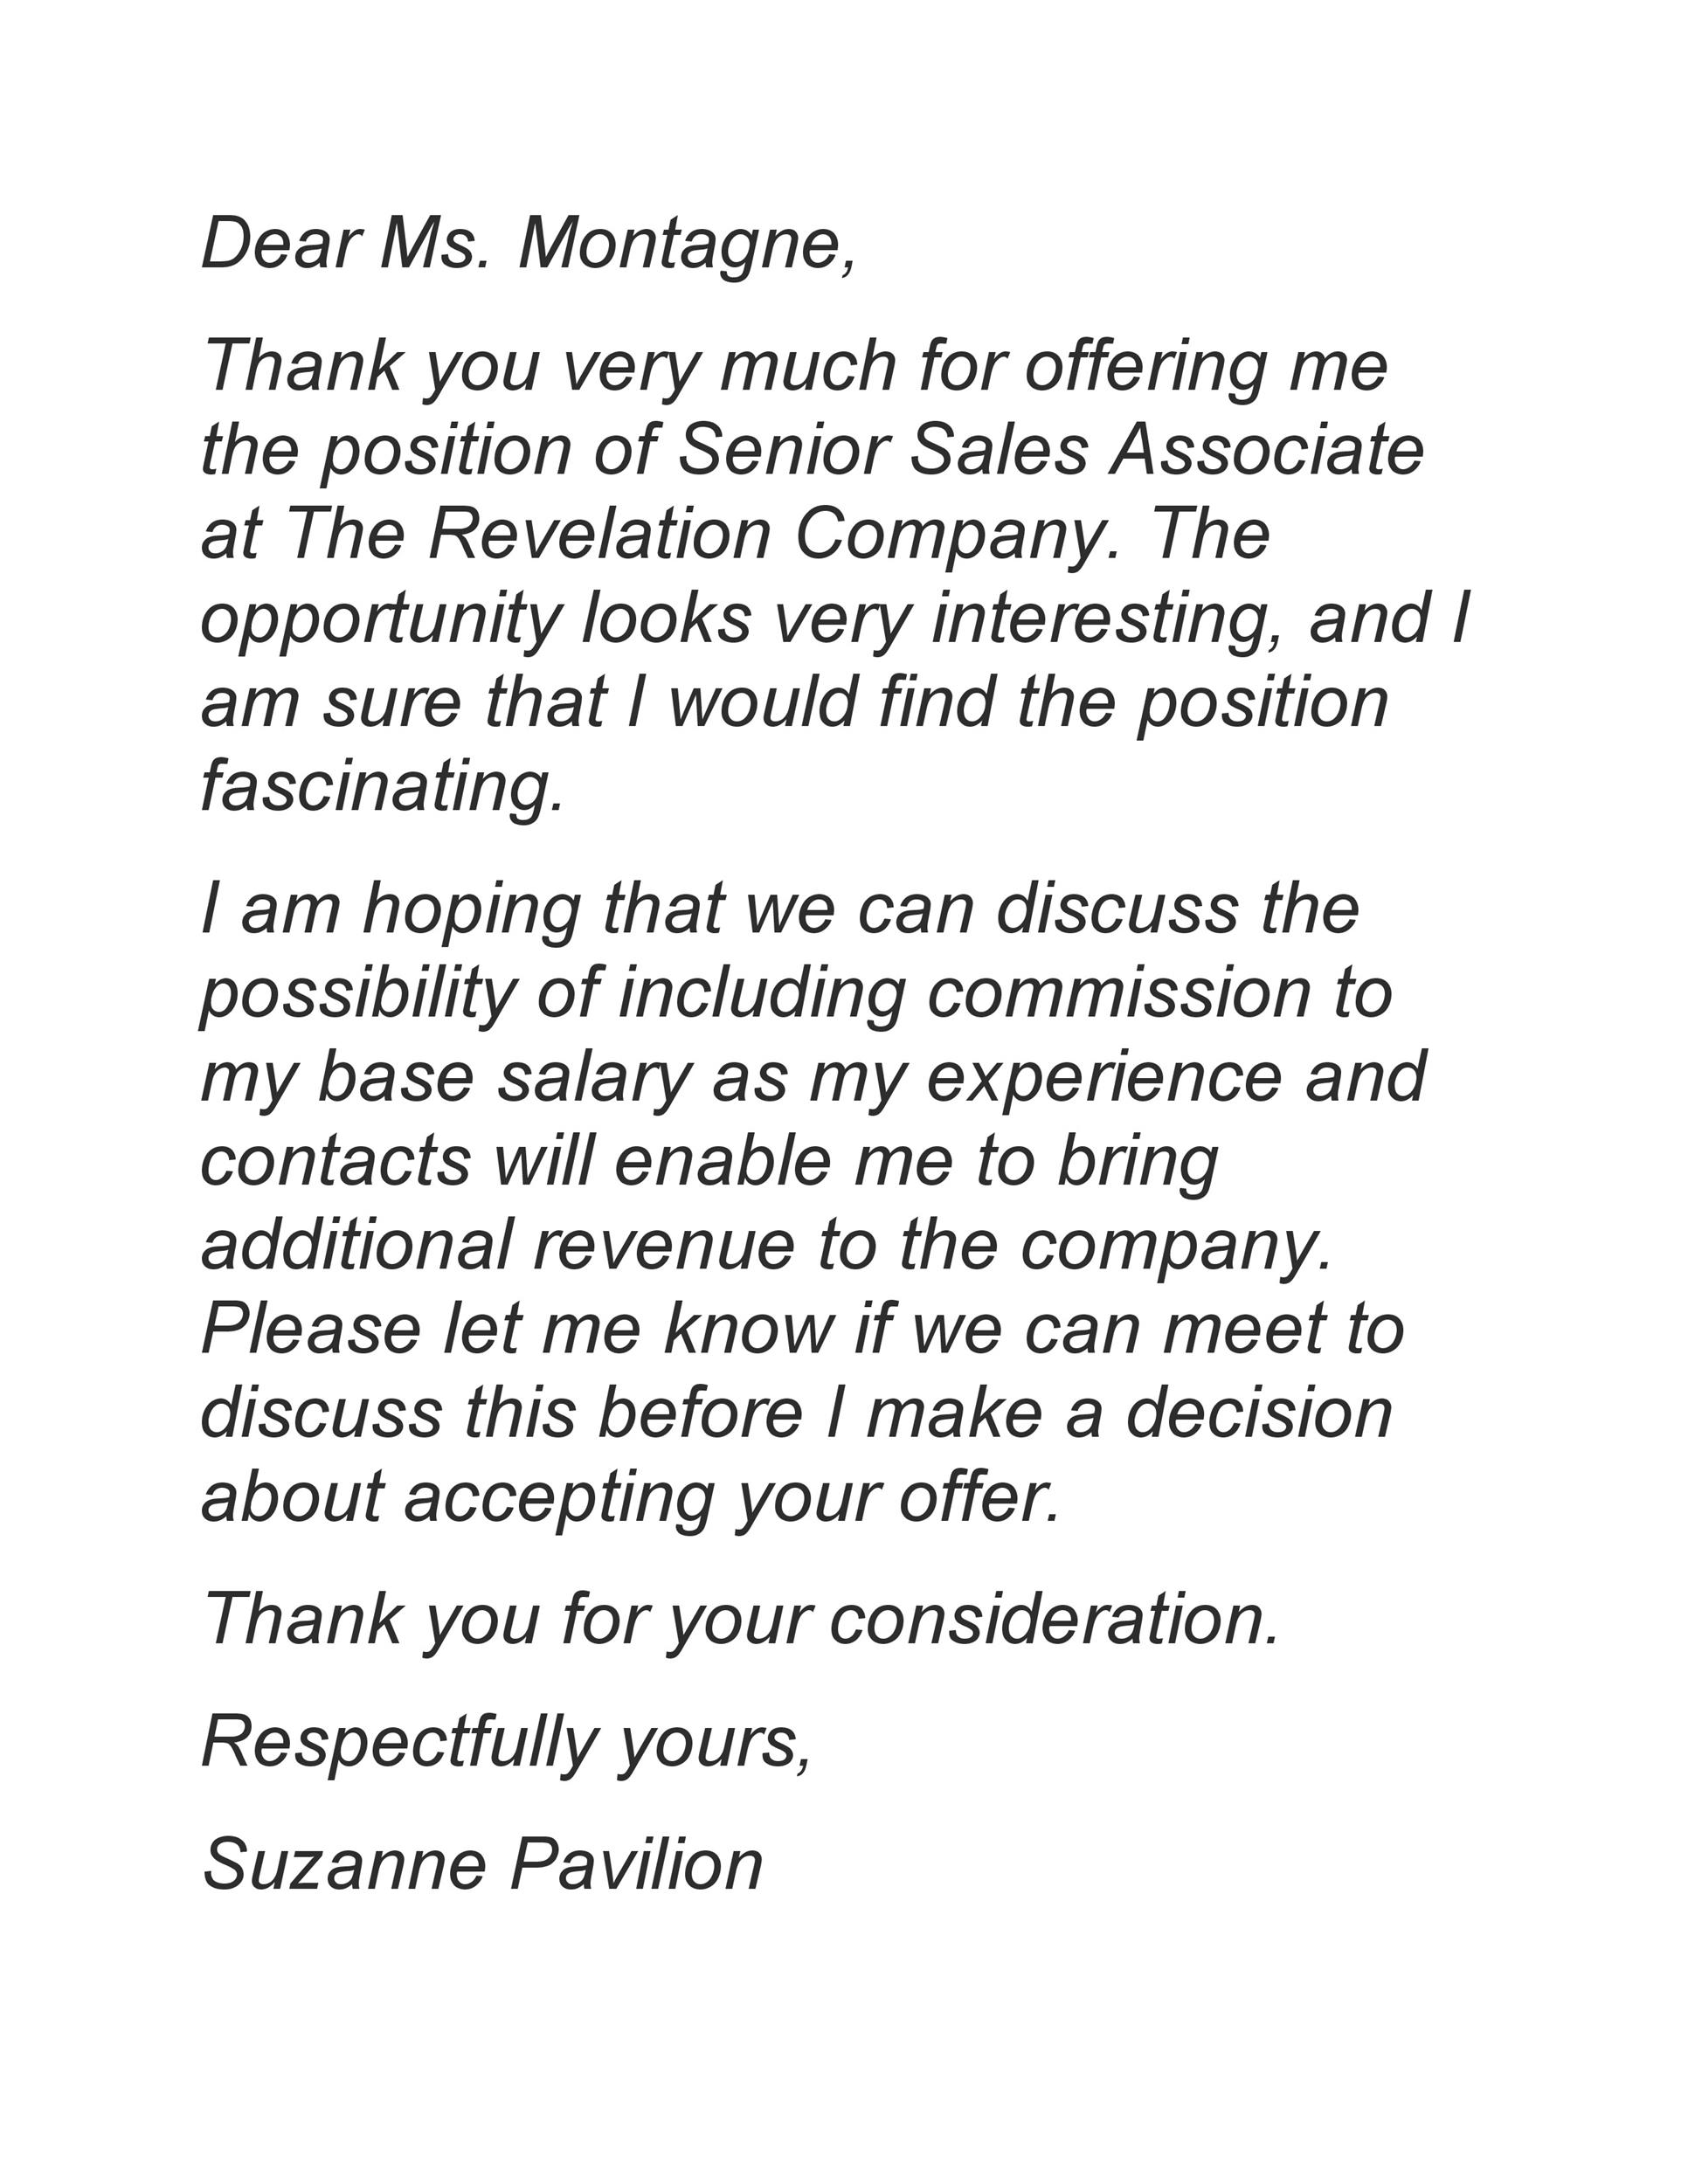 Free salary negotiation letter 44